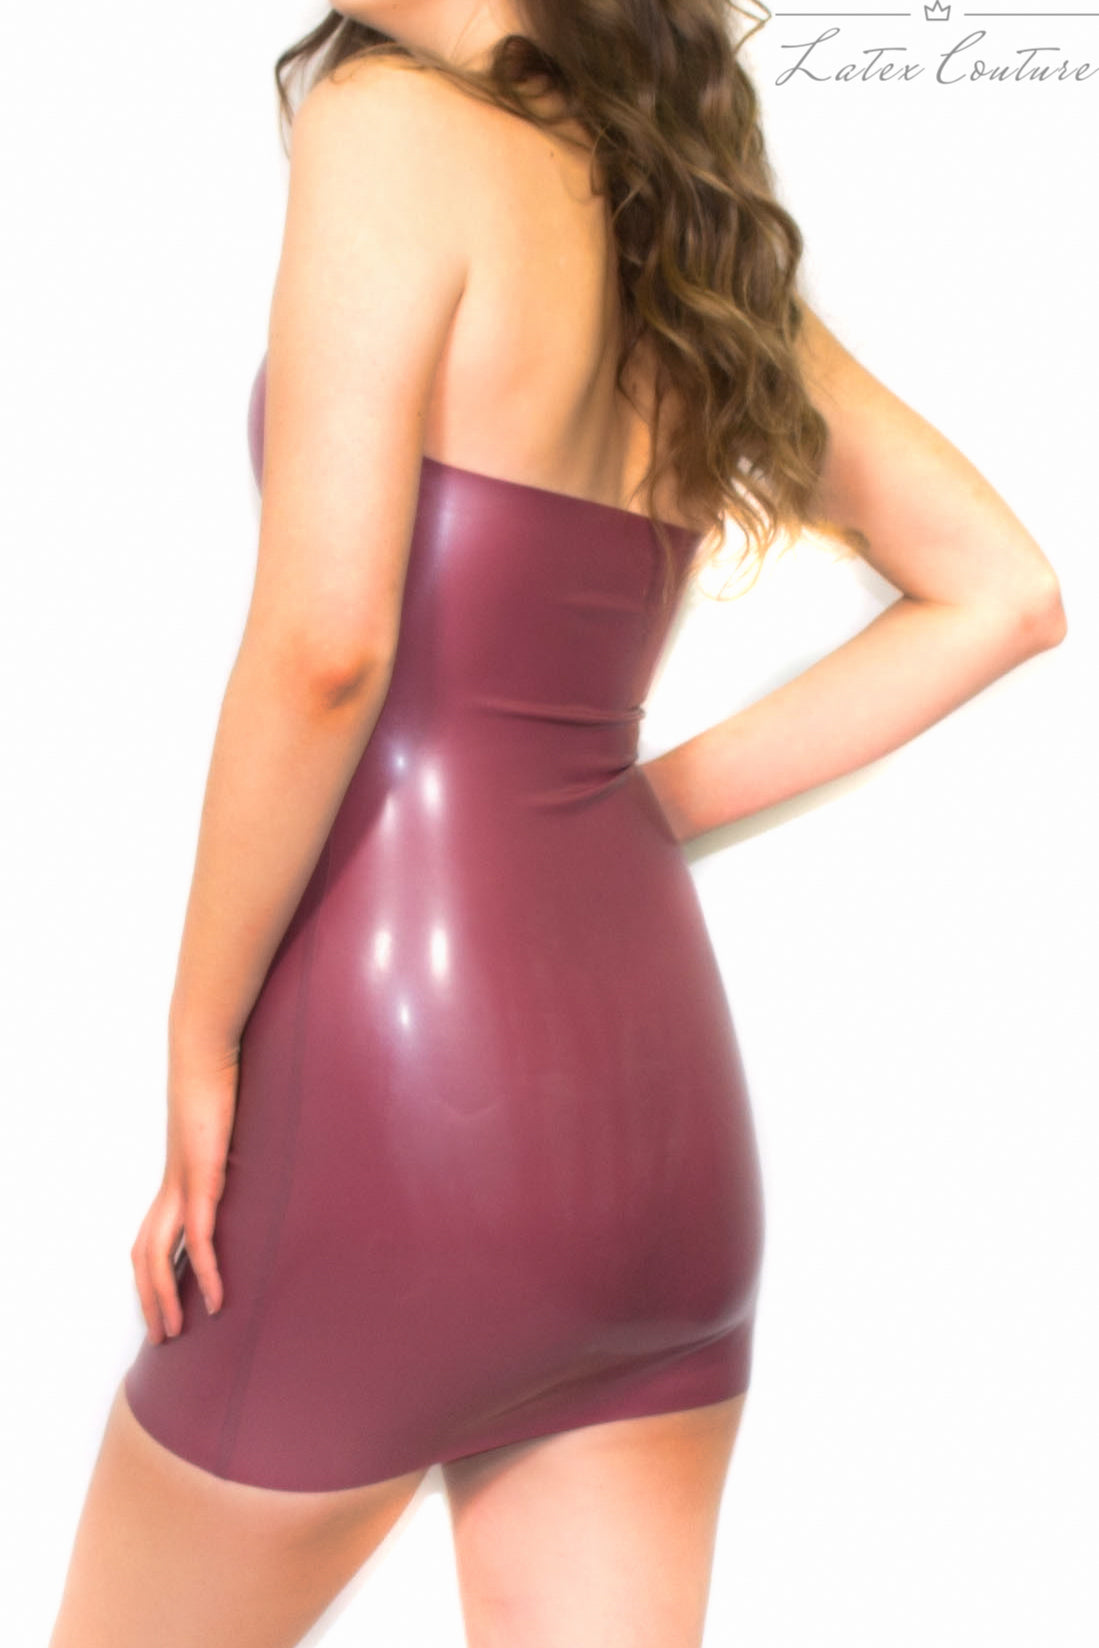 Latex Dress - Latex V Plunge Neck Dress